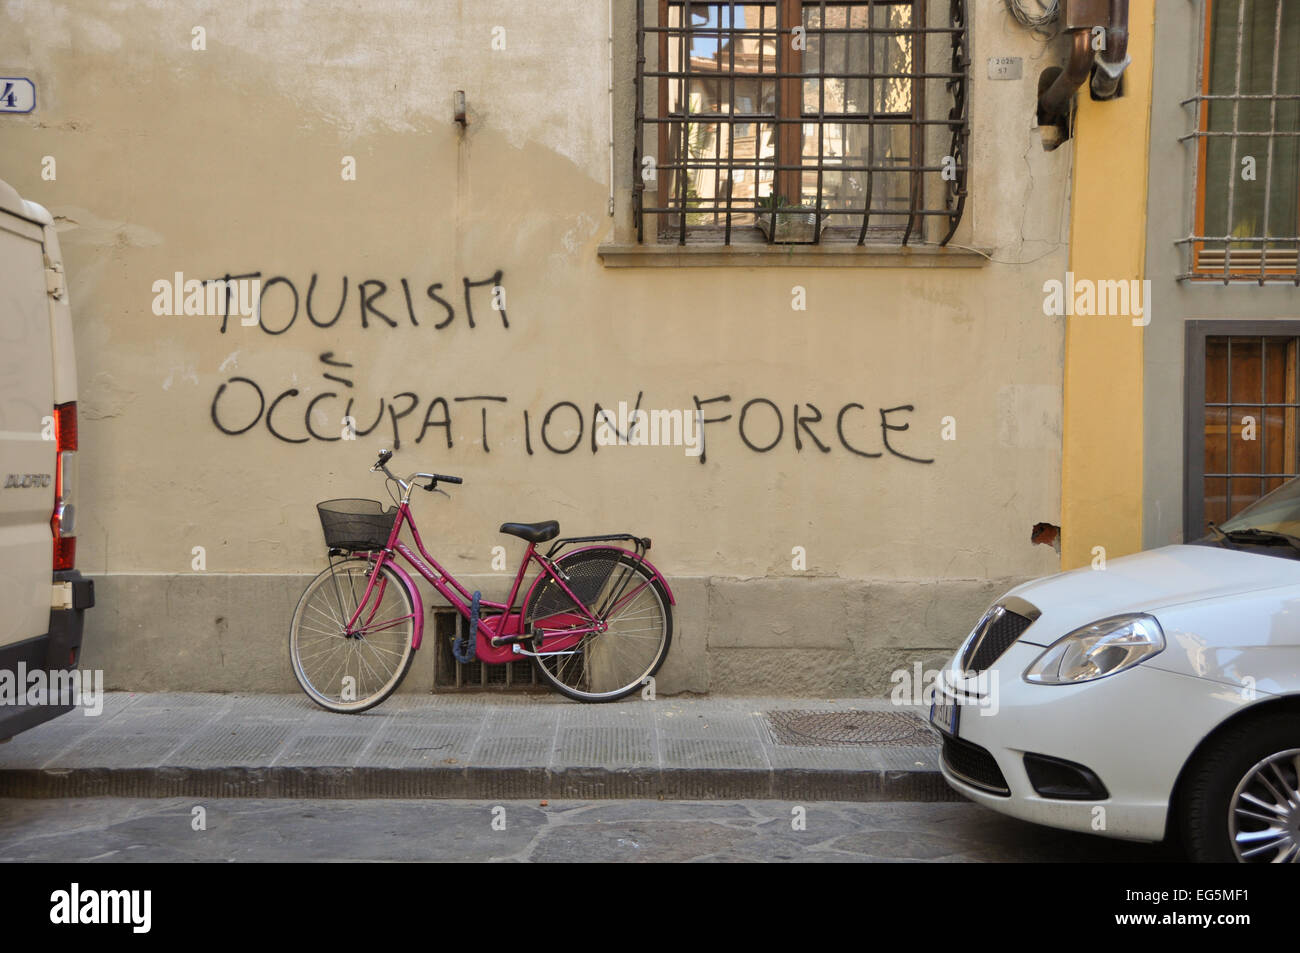 anti tourism graffiti on wall in Florence above pink bike - Italy - Stock Image